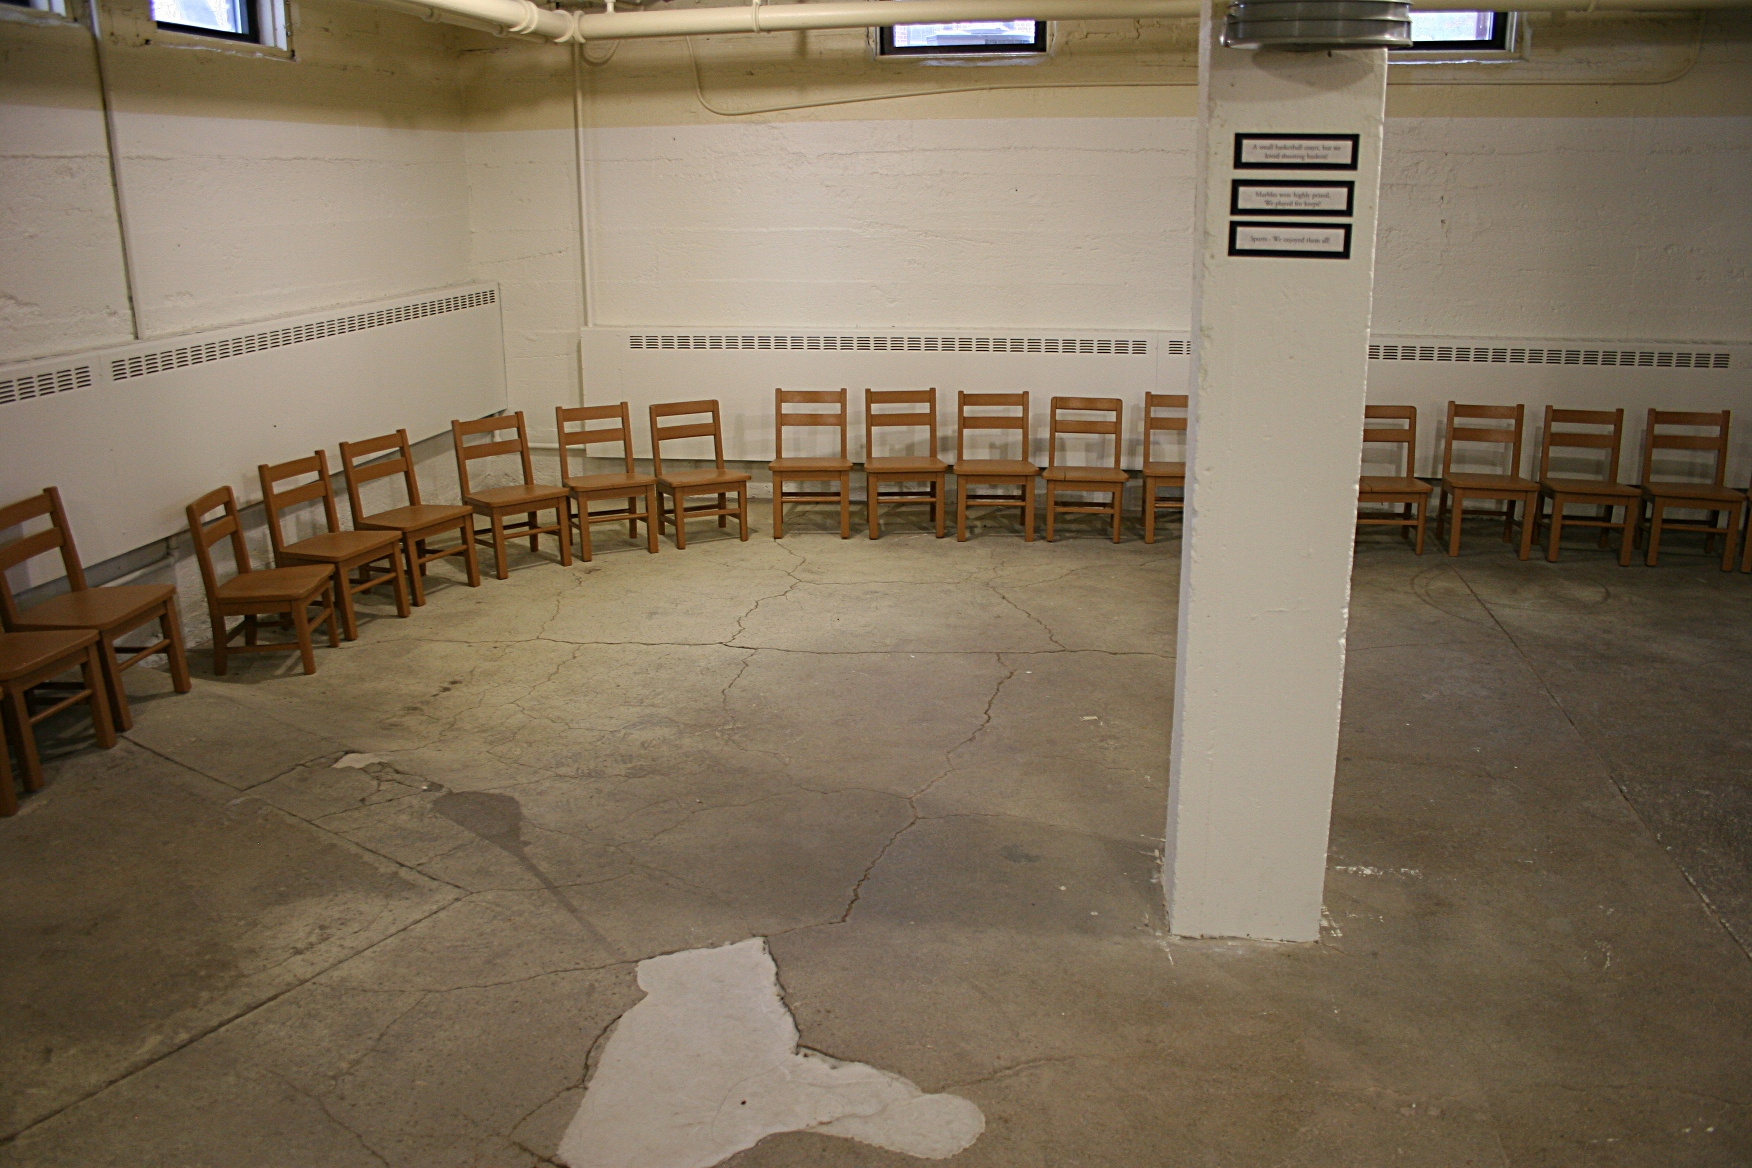 each boy was assigned a chair in the basement the chair kept order